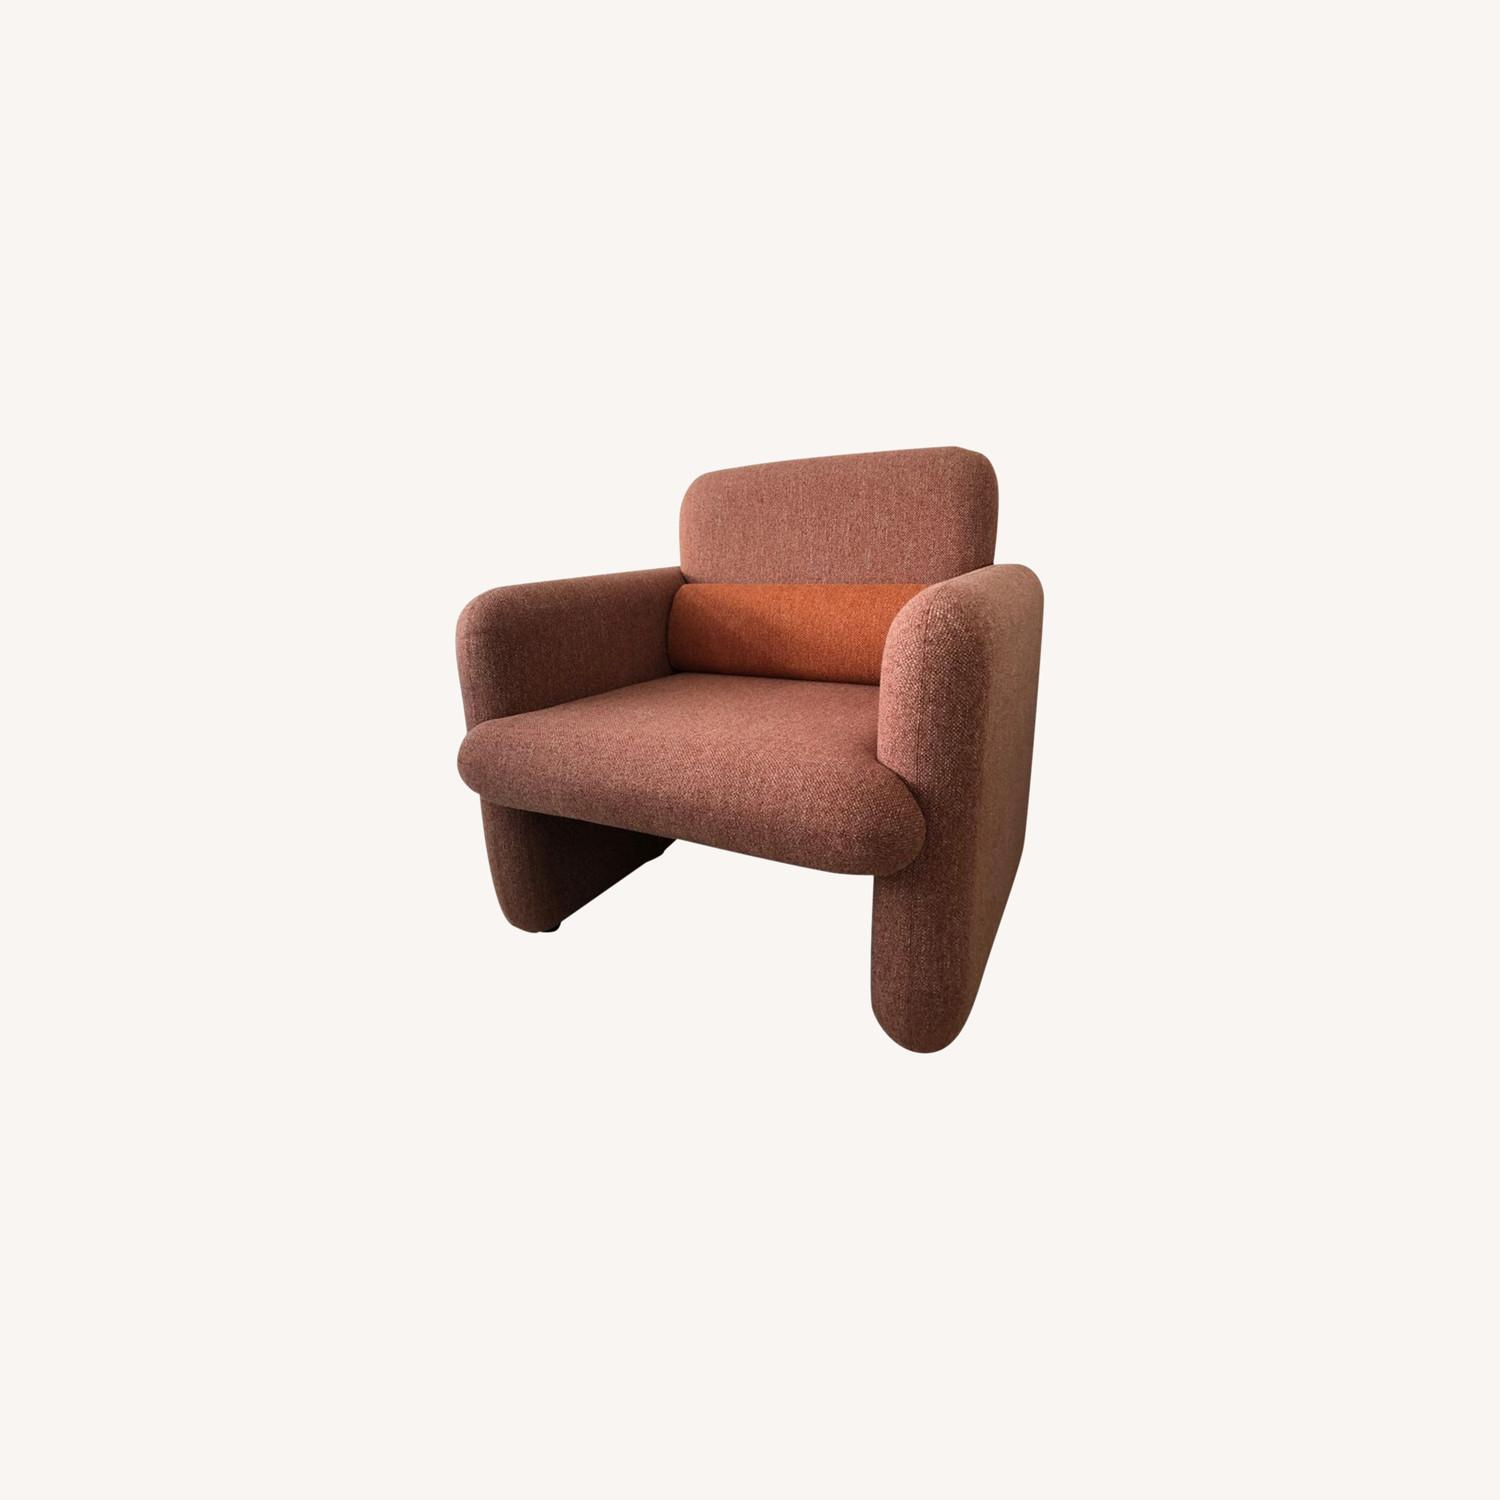 Industry West Plume Lounge Chair - Red/Pink - image-0